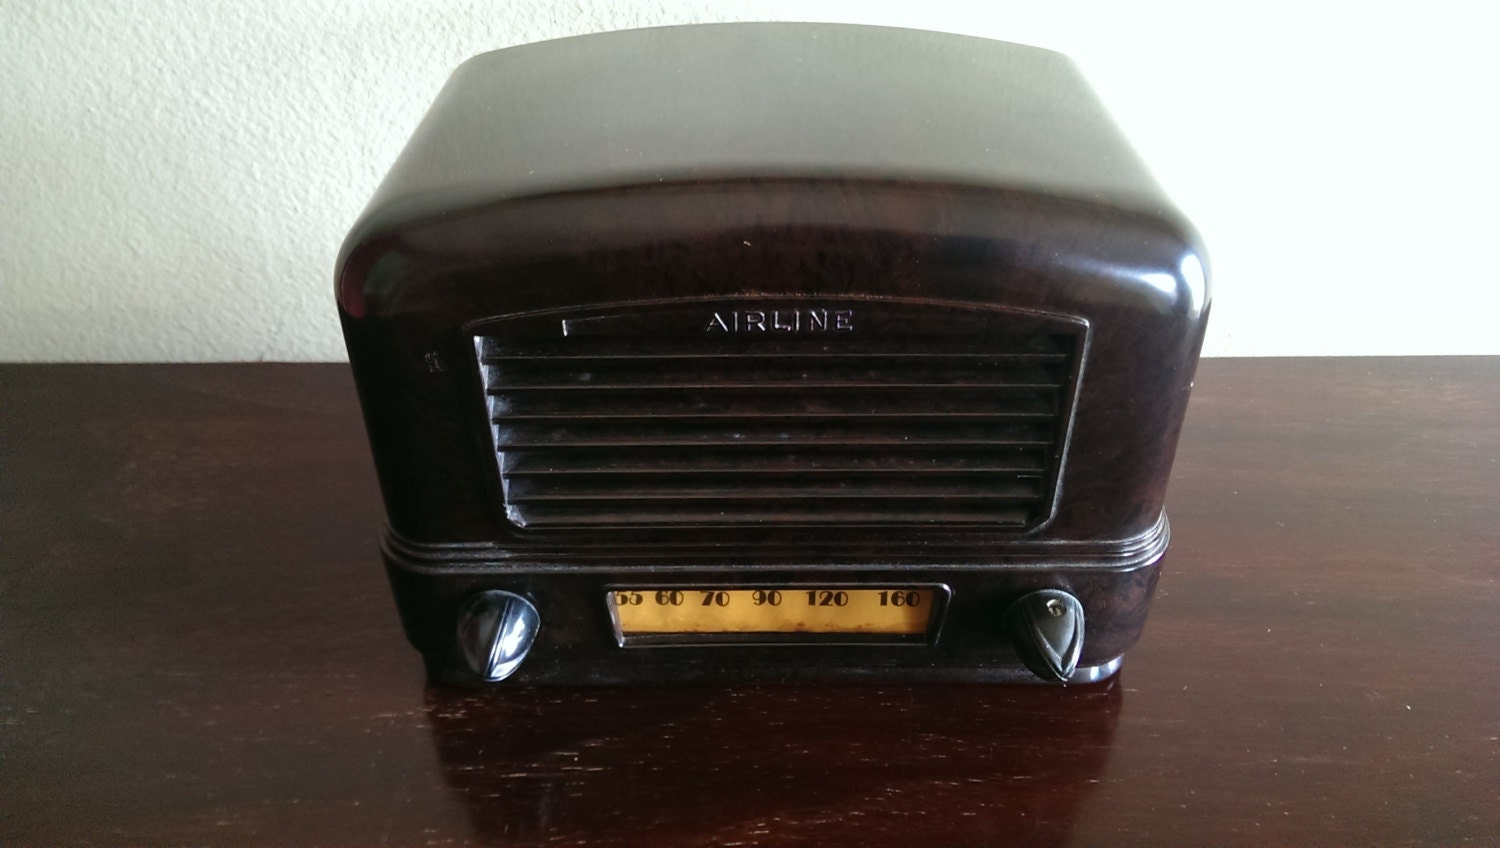 bluetooth 1940 39 s airline mini antique radio by echoradios on etsy. Black Bedroom Furniture Sets. Home Design Ideas